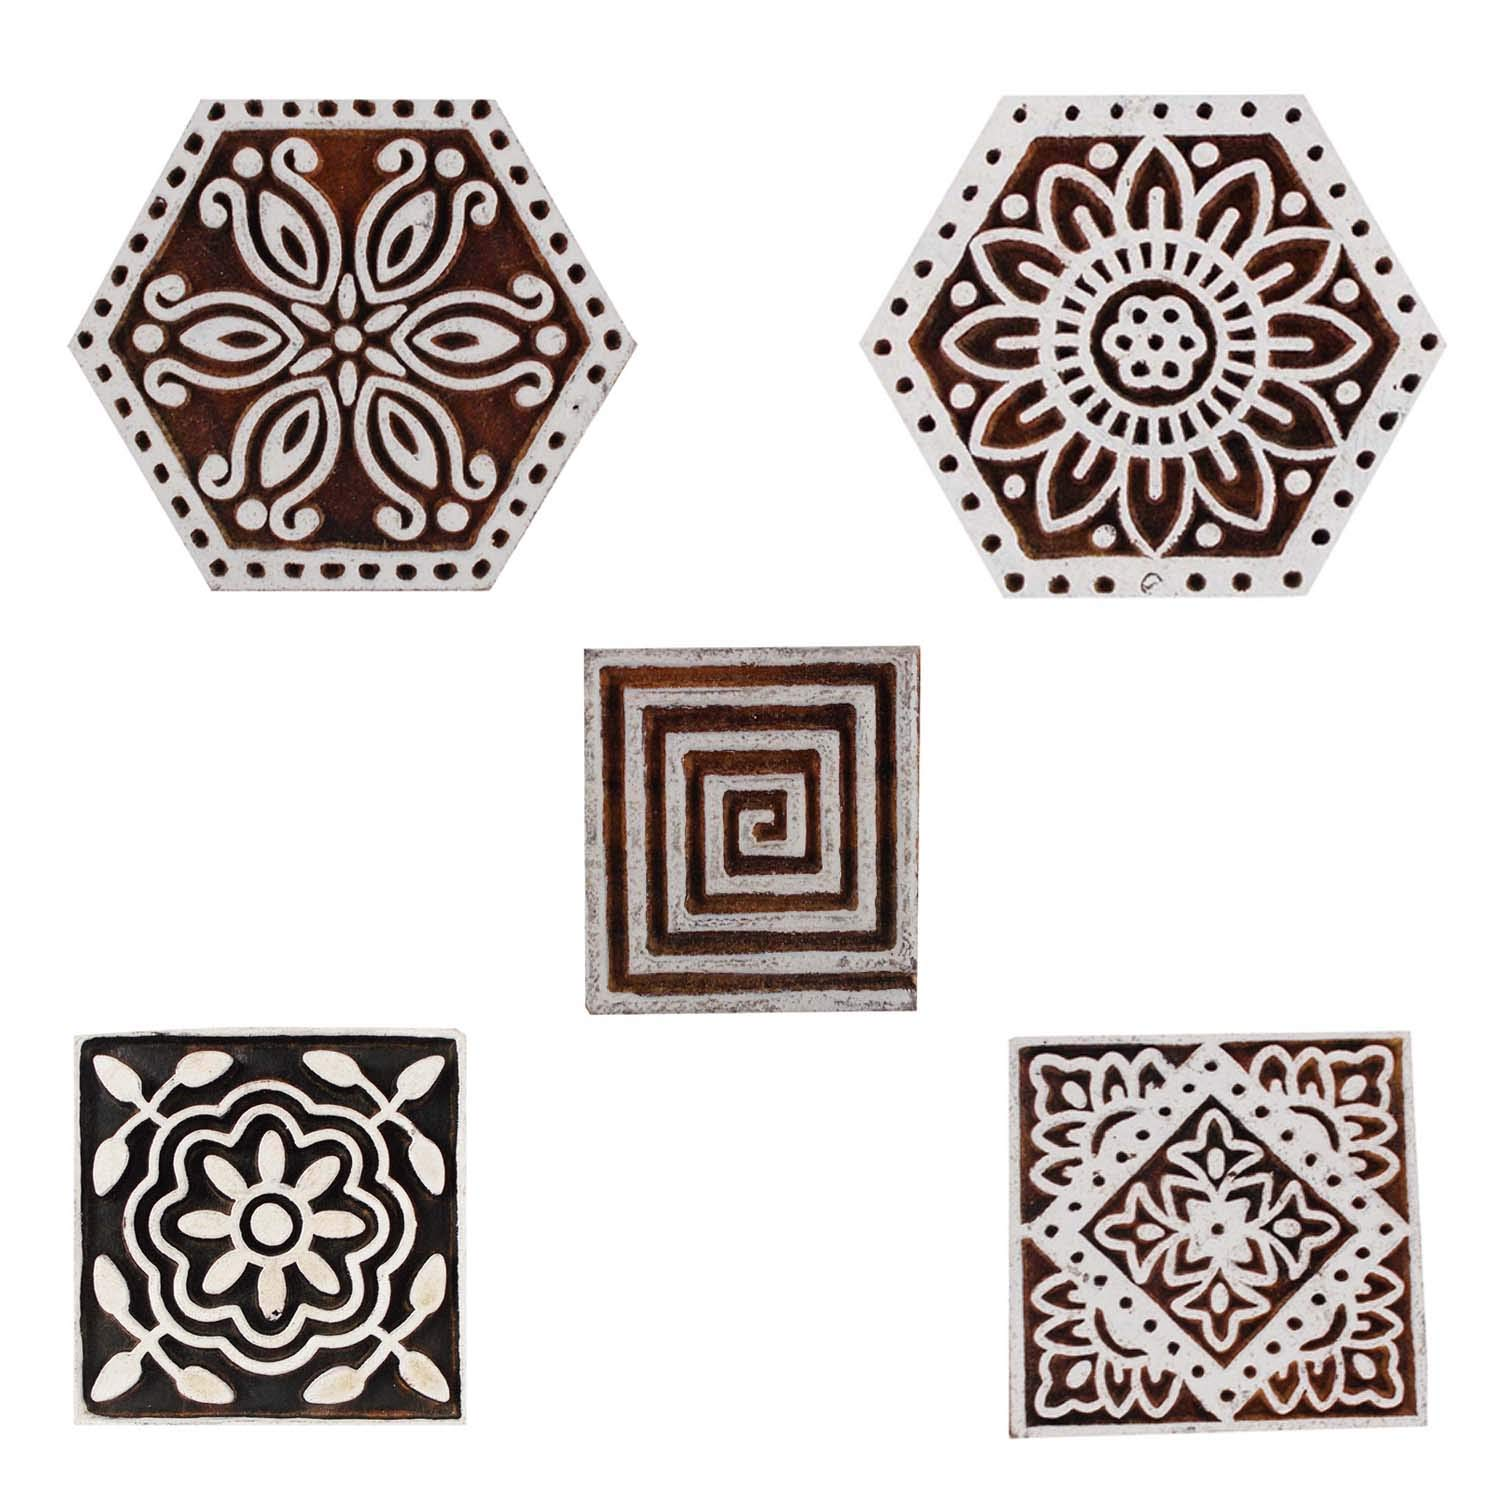 Printing Block Wooden Decorative Hexagon and Square Textile Clay Craft Henna Tattoo Scrapbook Stamps Set of 5 by CraftyArt